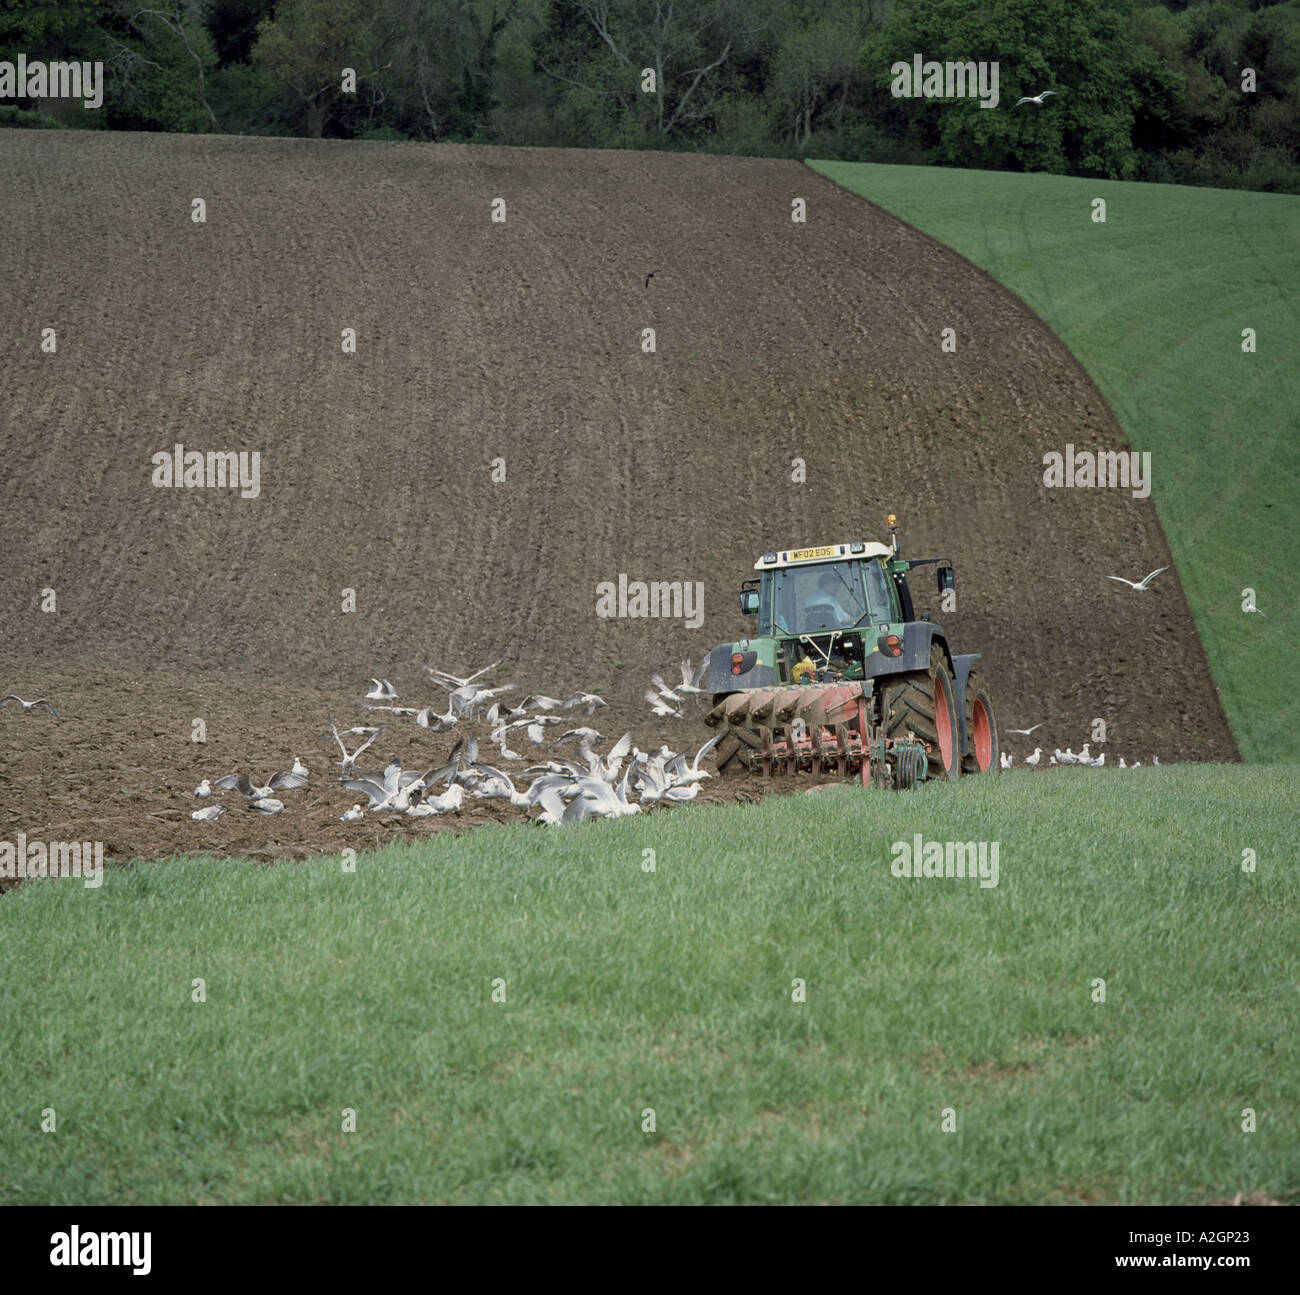 Fendt tractor plough undulating grass pasture field in Devon with some seagulls following - Stock Image